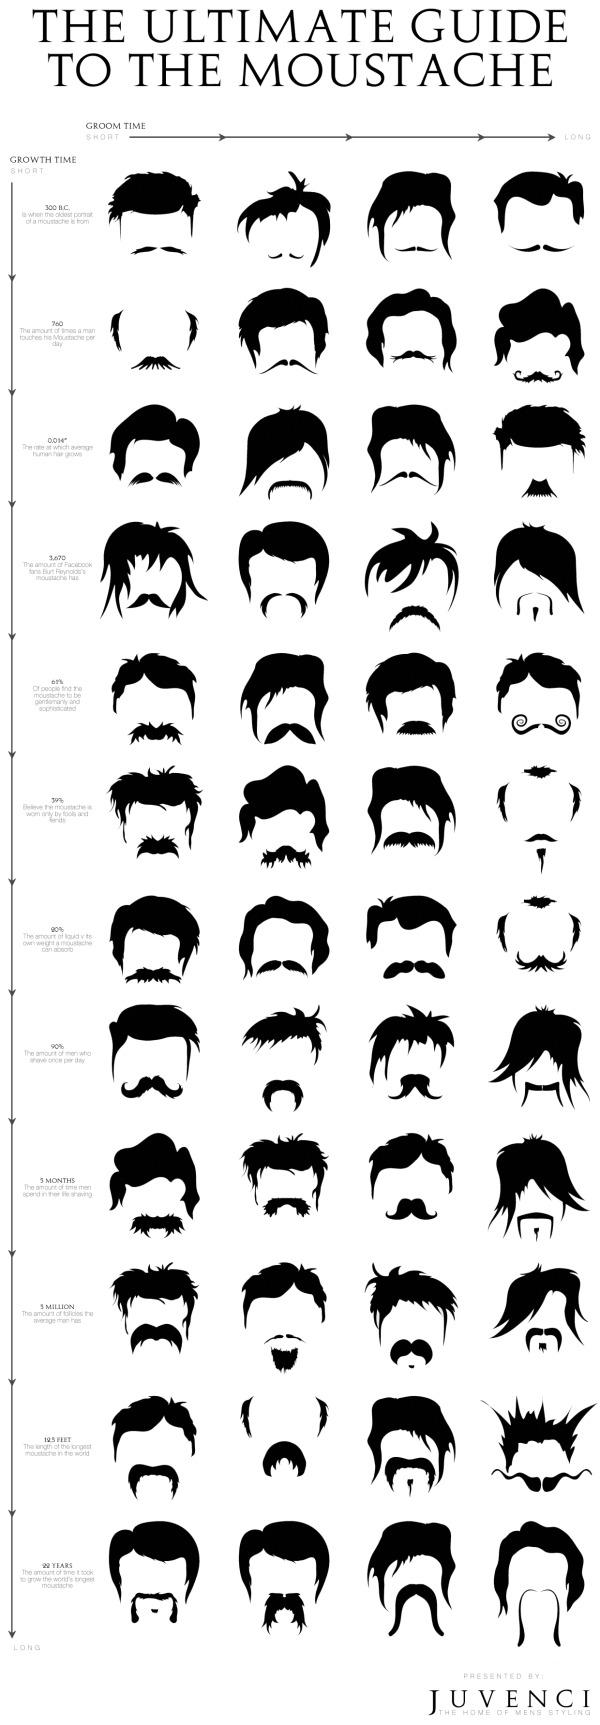 The-ultimate-guide-to-the-moustache